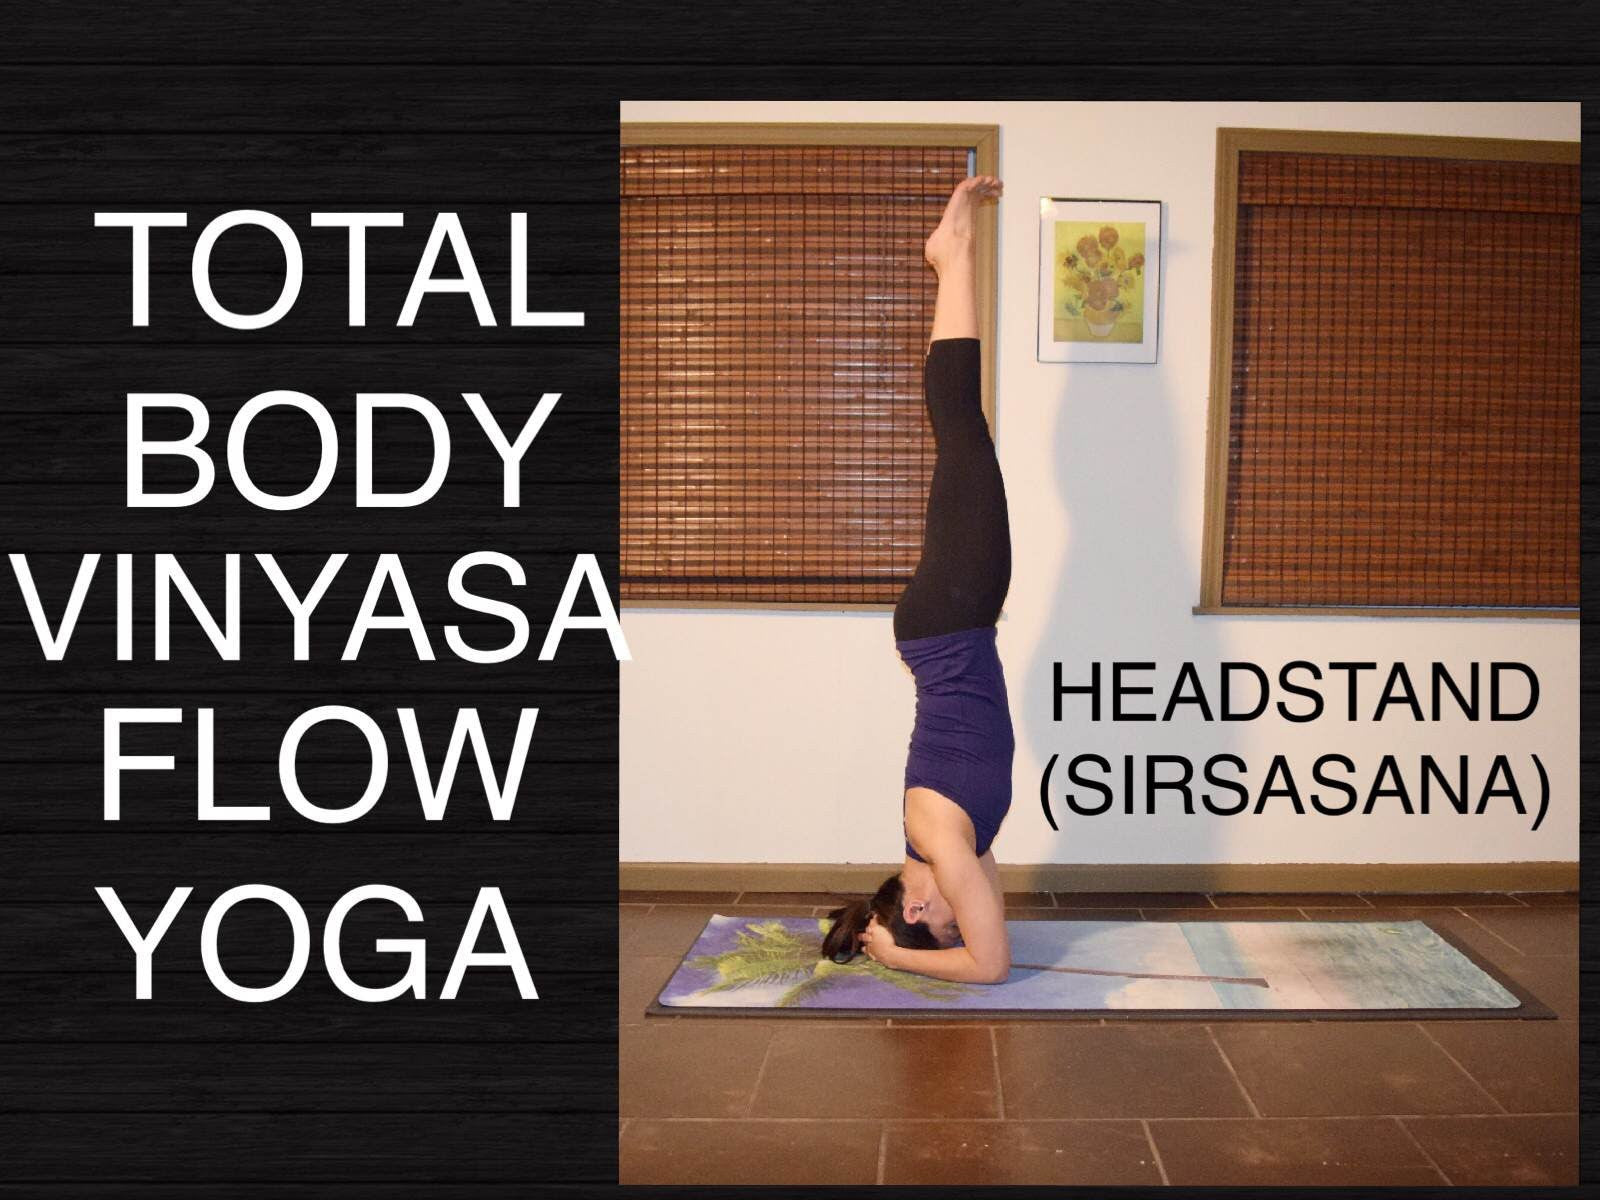 Headstand Vinyasa Flow Yoga for Intermediate and Advanced - 60 Minutes